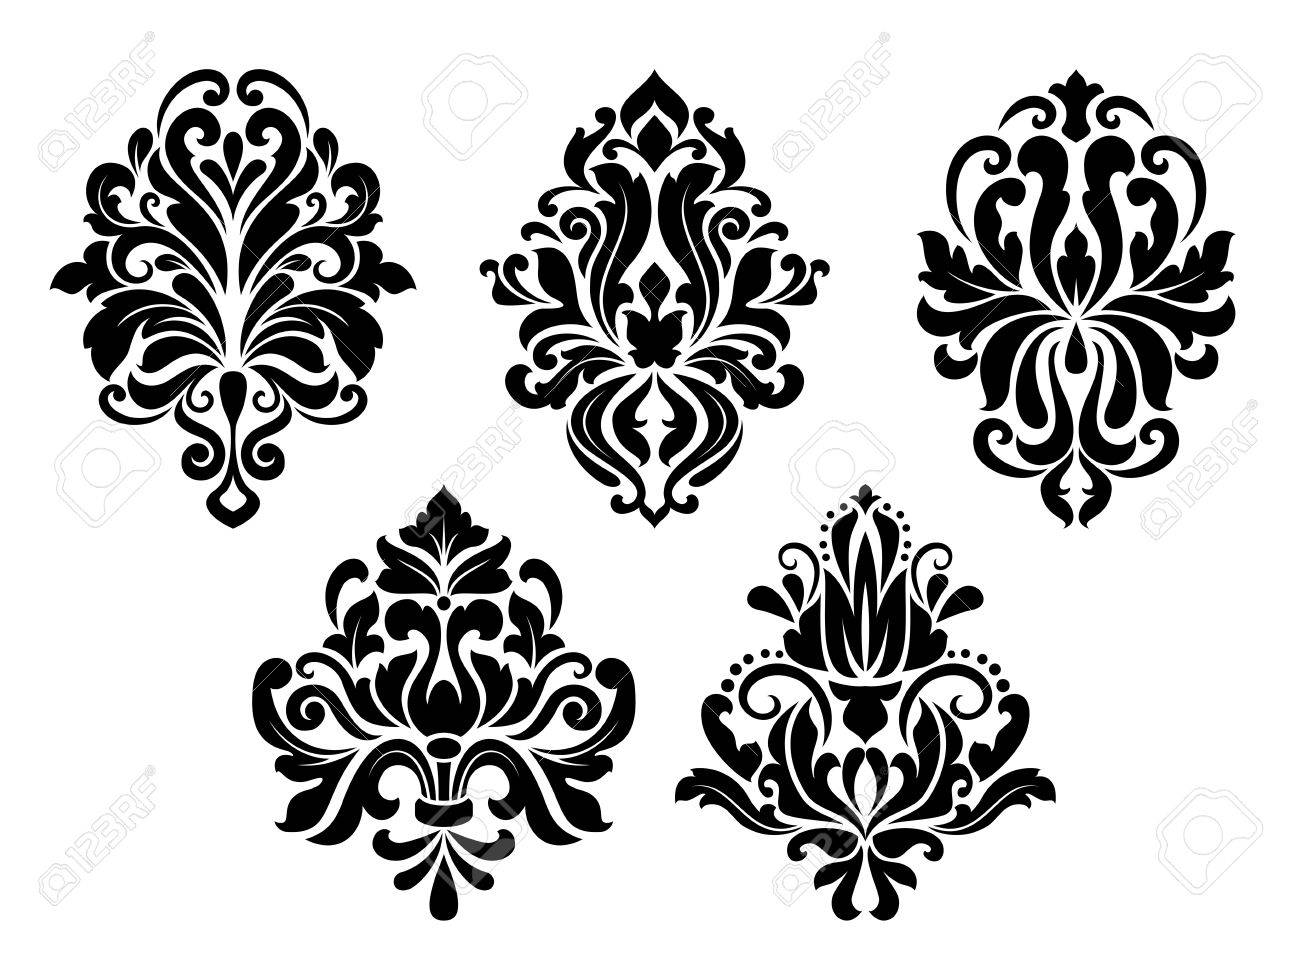 Decorative Floral Elements Set In Retro Damask Style Isolated